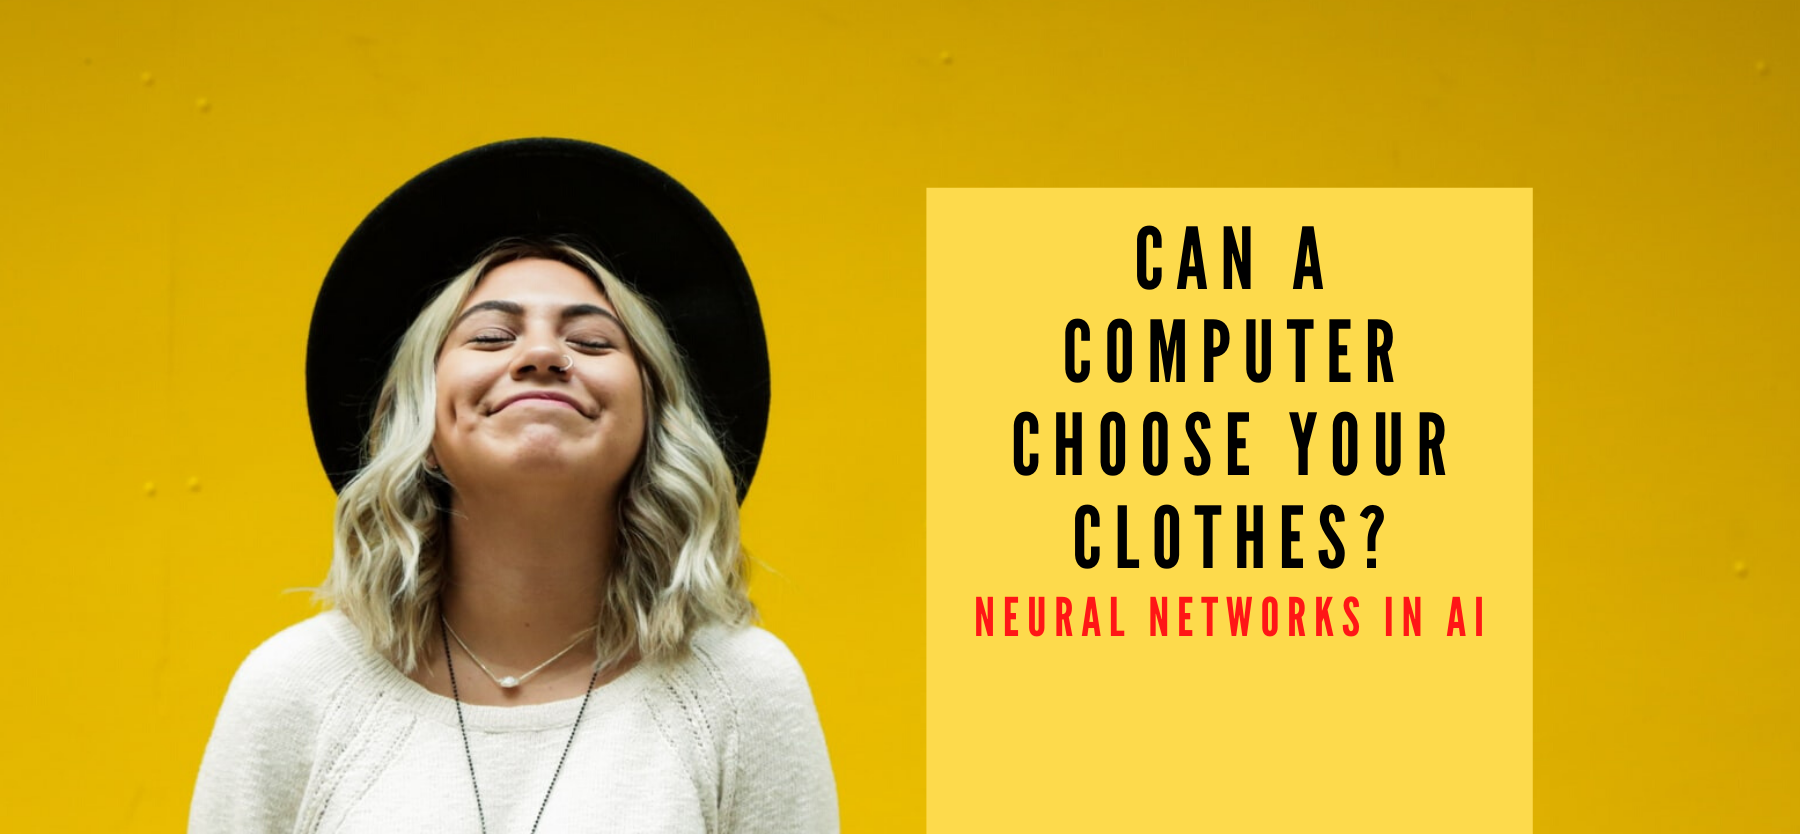 Can computers choose your clothes? AI neural networks